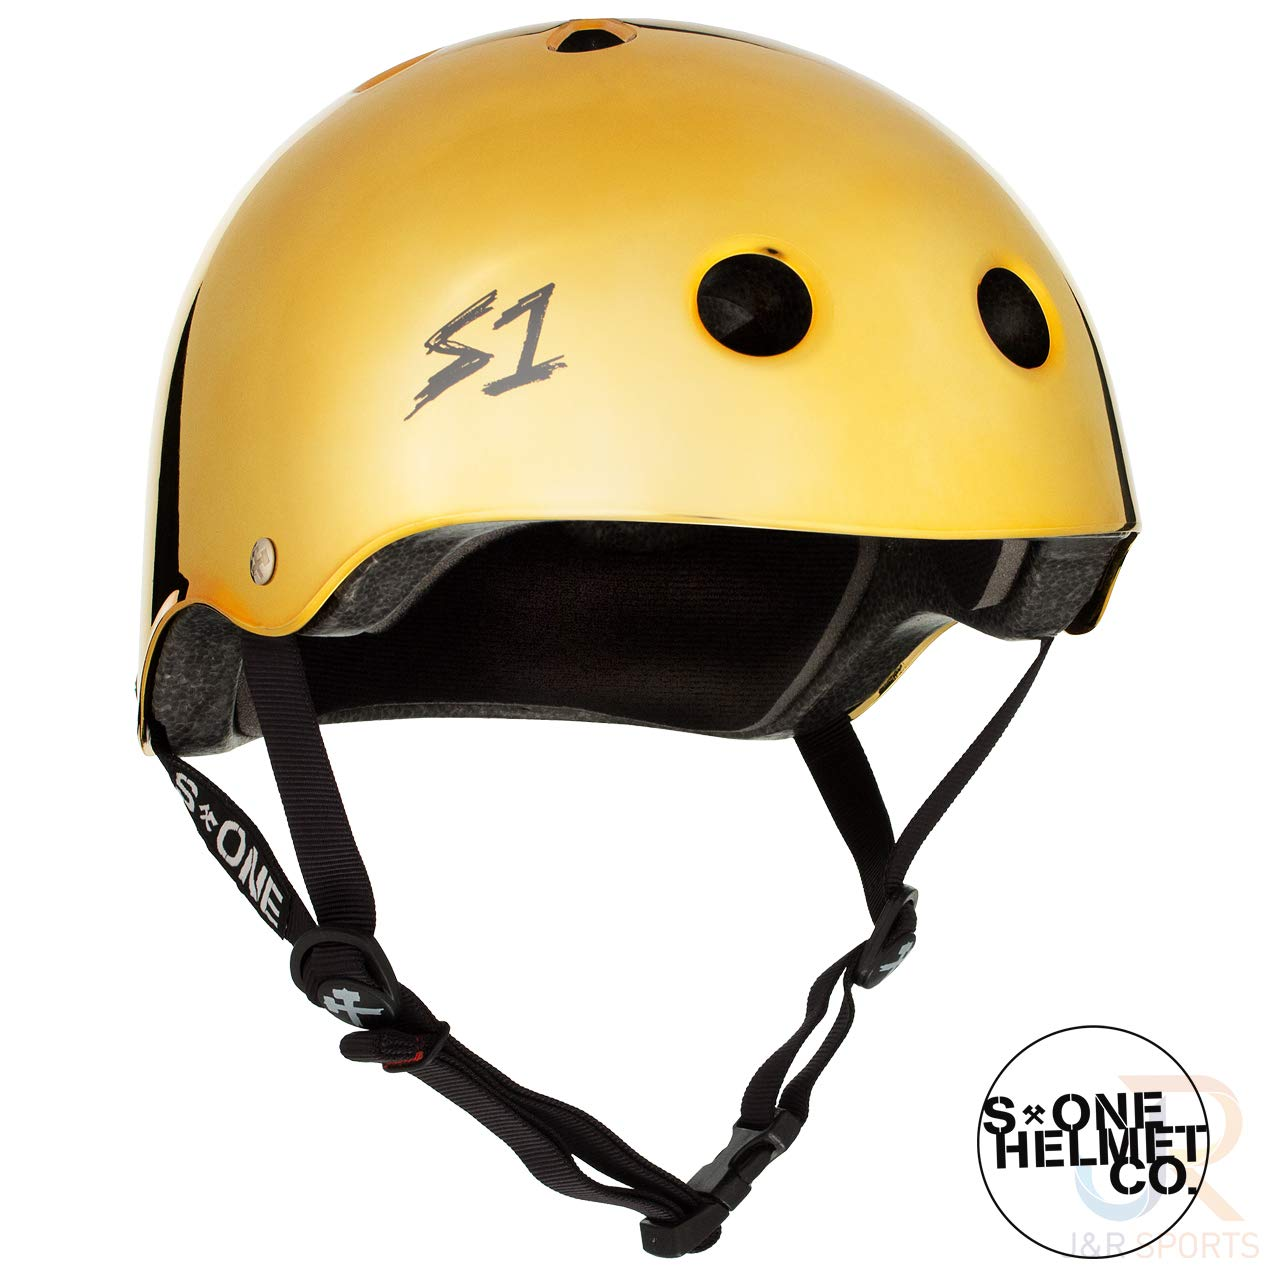 S1 Lifer Helmet - Gold Mirror